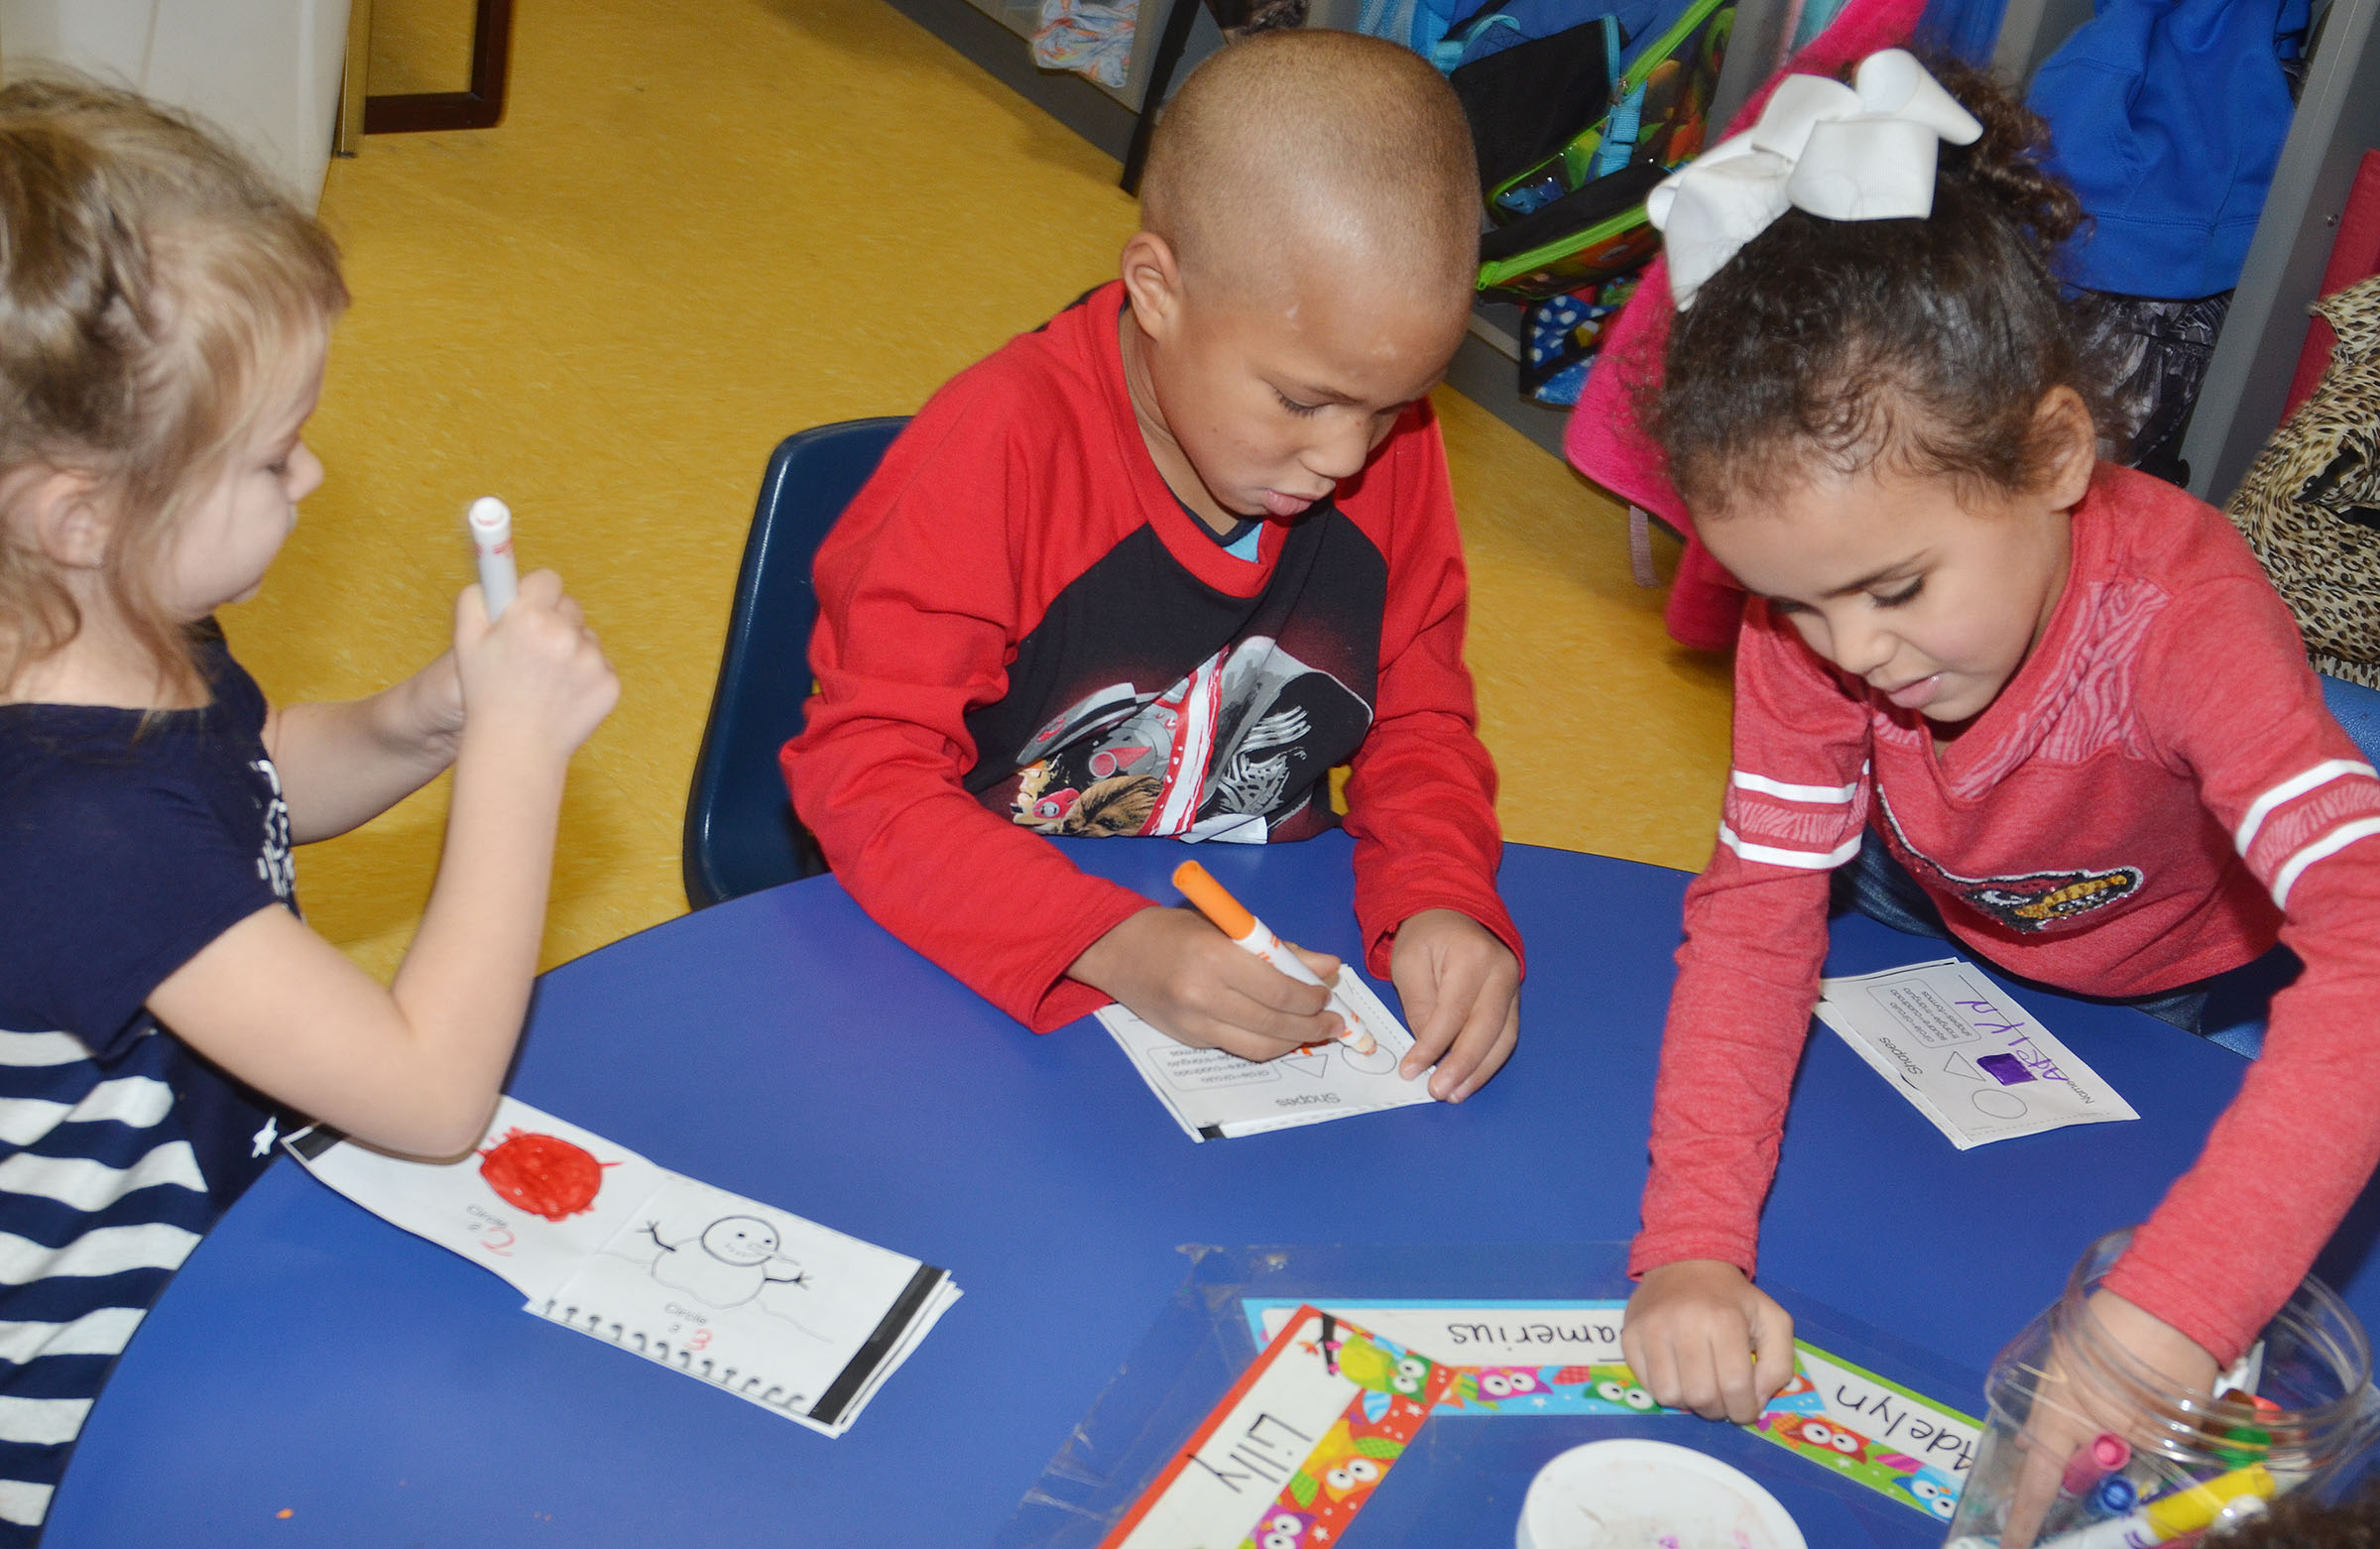 From left, CES preschool students Lilly Spencer, Jamerius Miller and Adelyn Litsey color in their shape booklets.